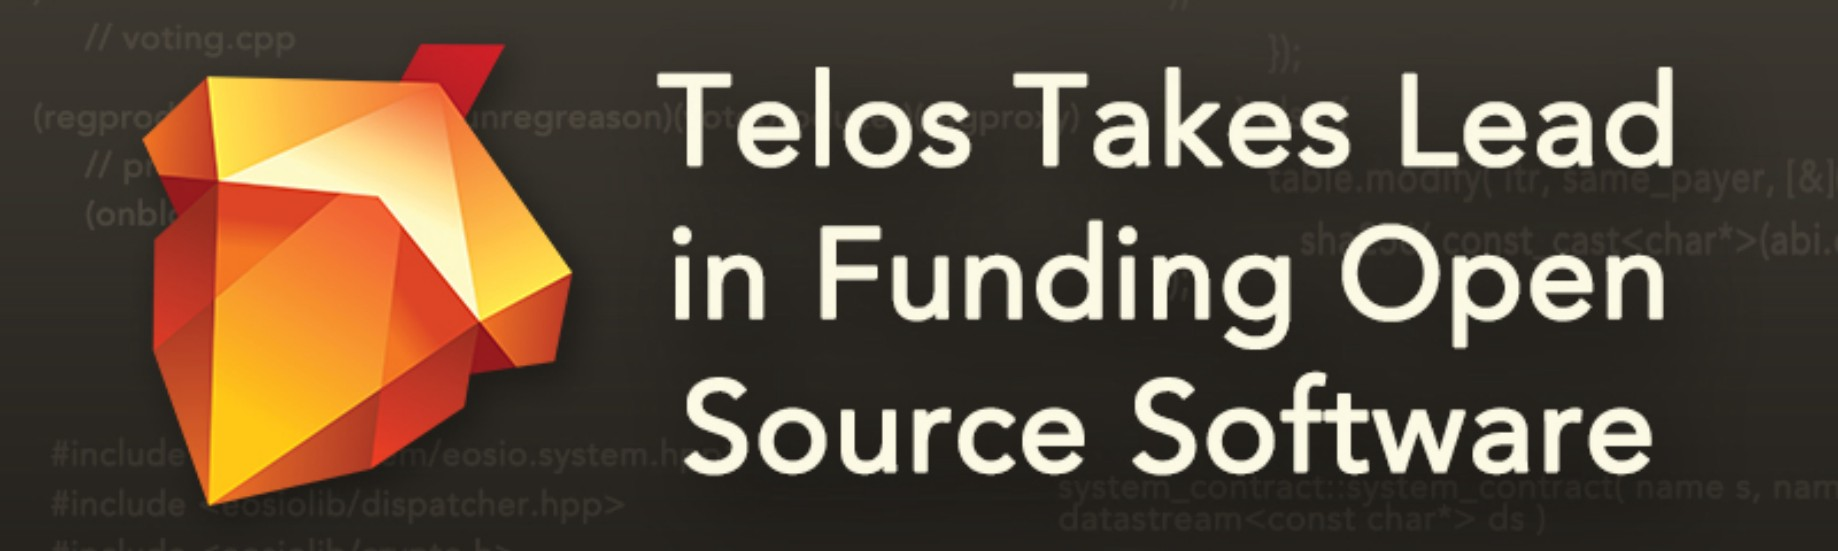 Telos Takes The Lead In Funding Open Source Software